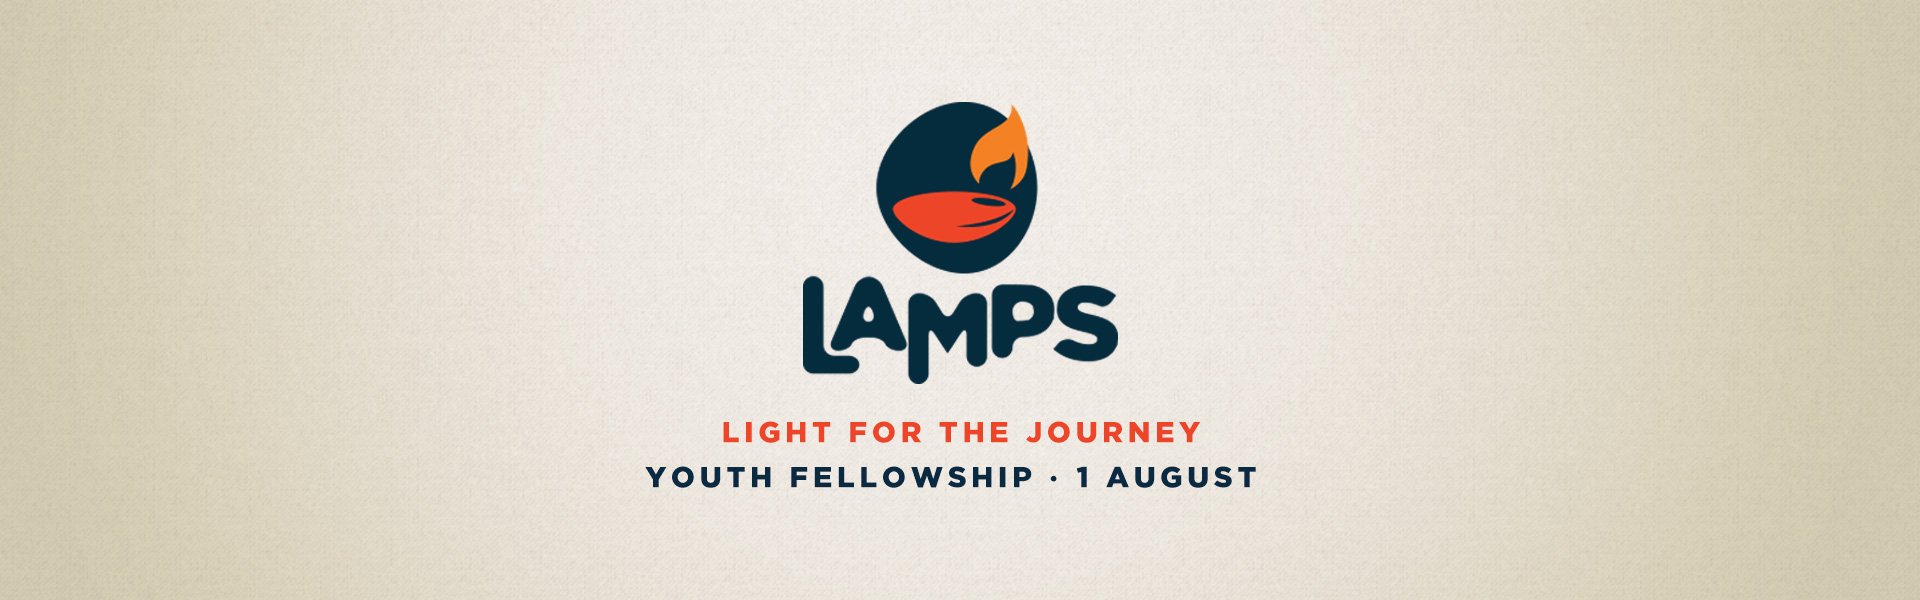 20150721-Lamps-new